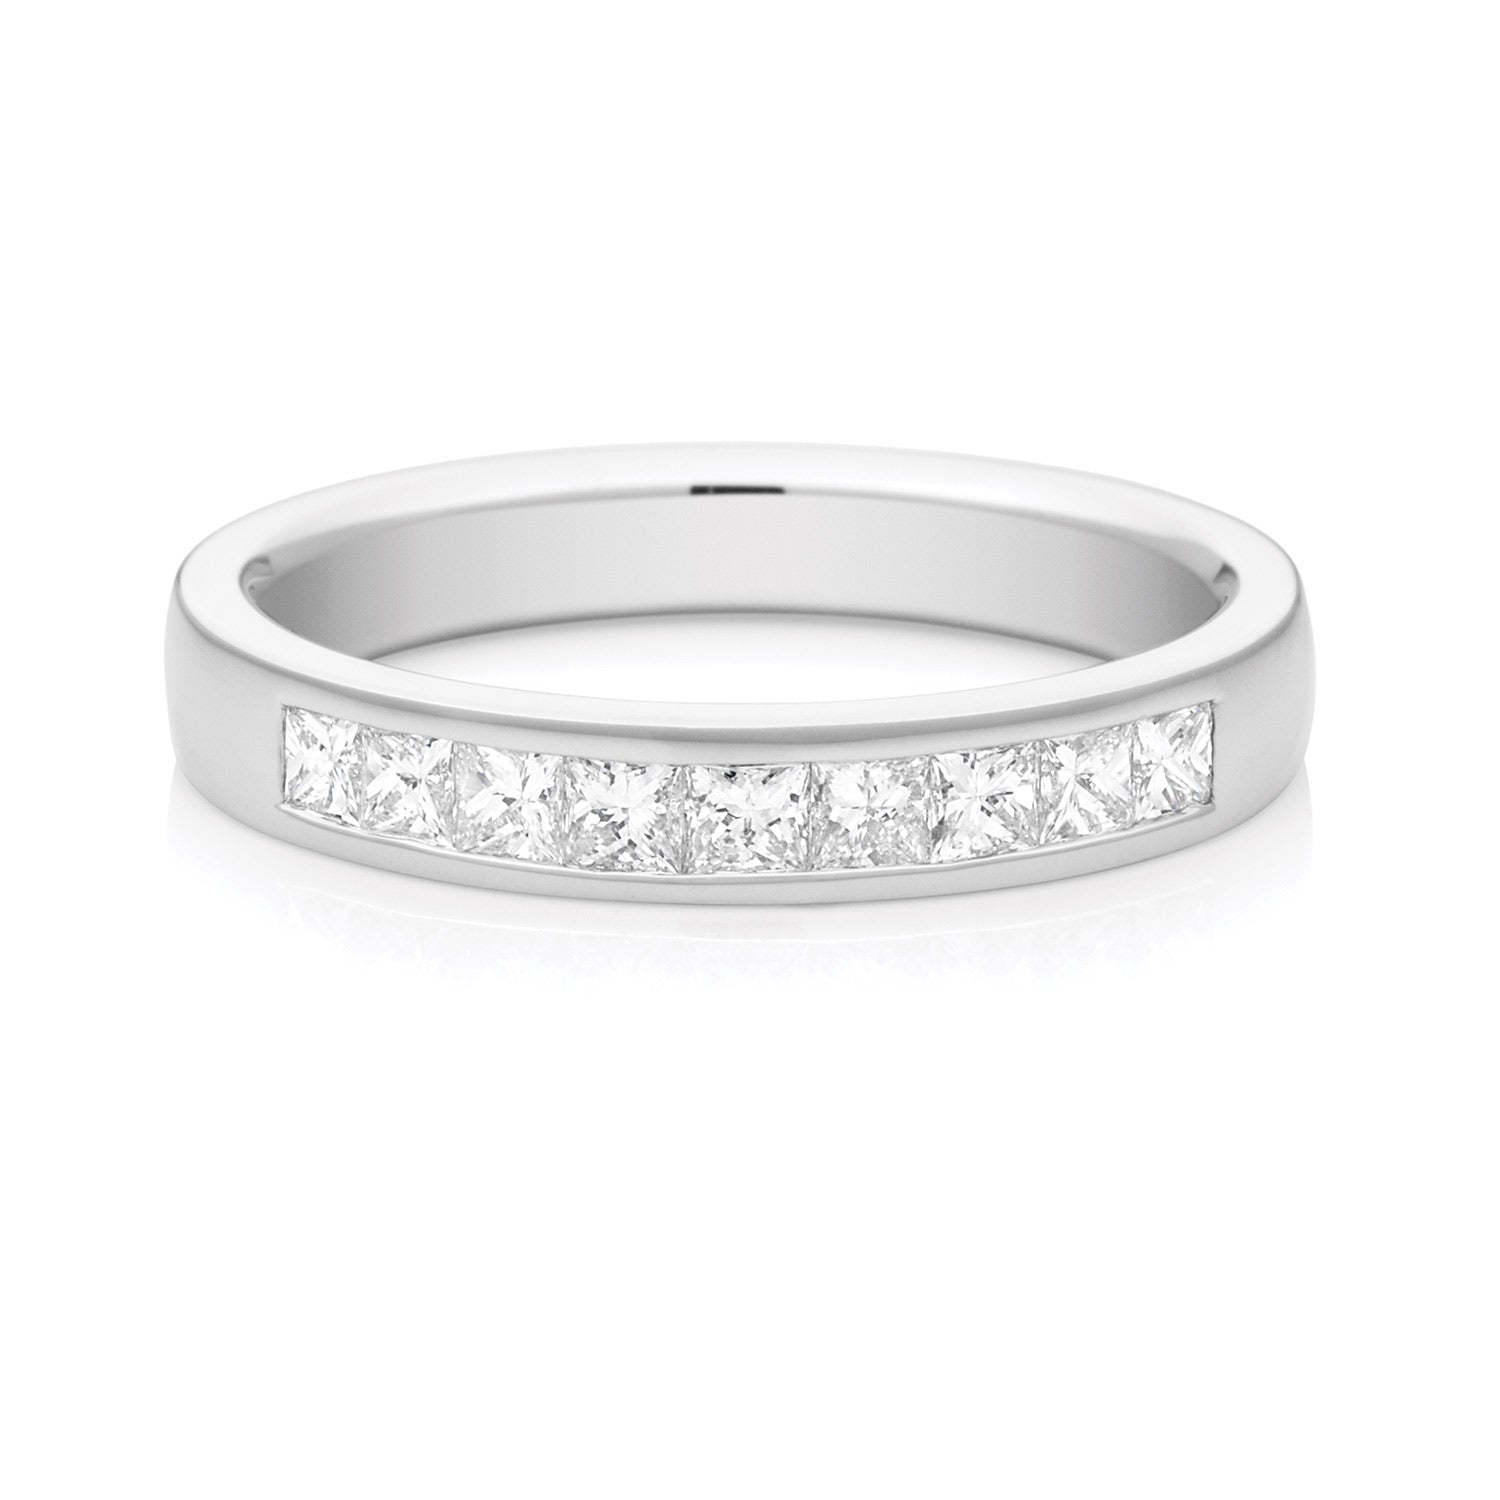 Promise Wedding Band 18ct White Gold with 1/2 CARAT tw of Diamonds